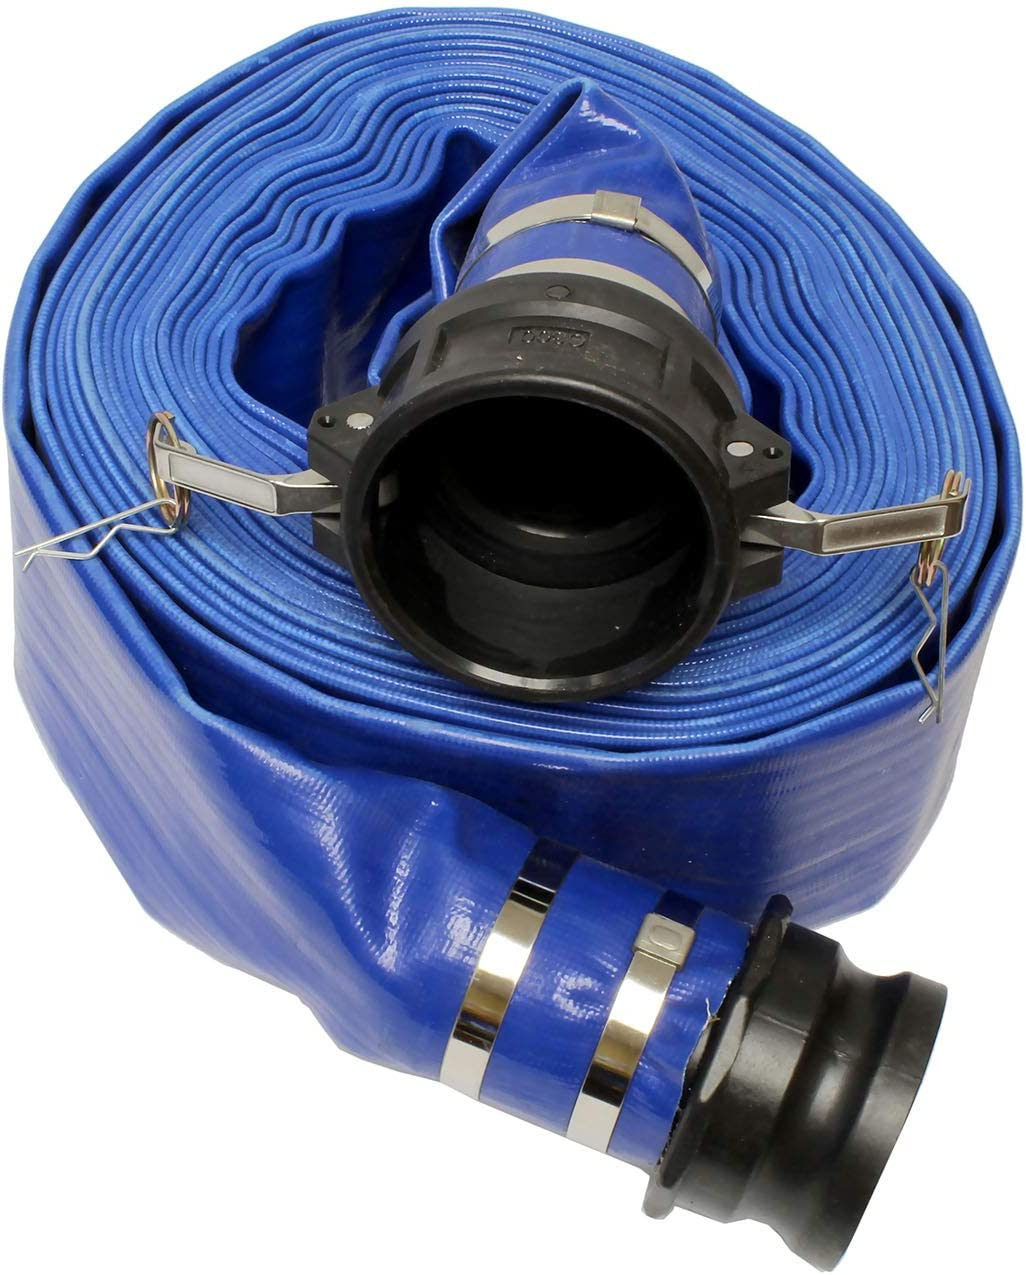 BISupply Lay Flat Hose 3in x 50ft Flat Discharge Hose & Poly Cam Lock – PVC Pool Hose Heavy Duty Backwash Hose